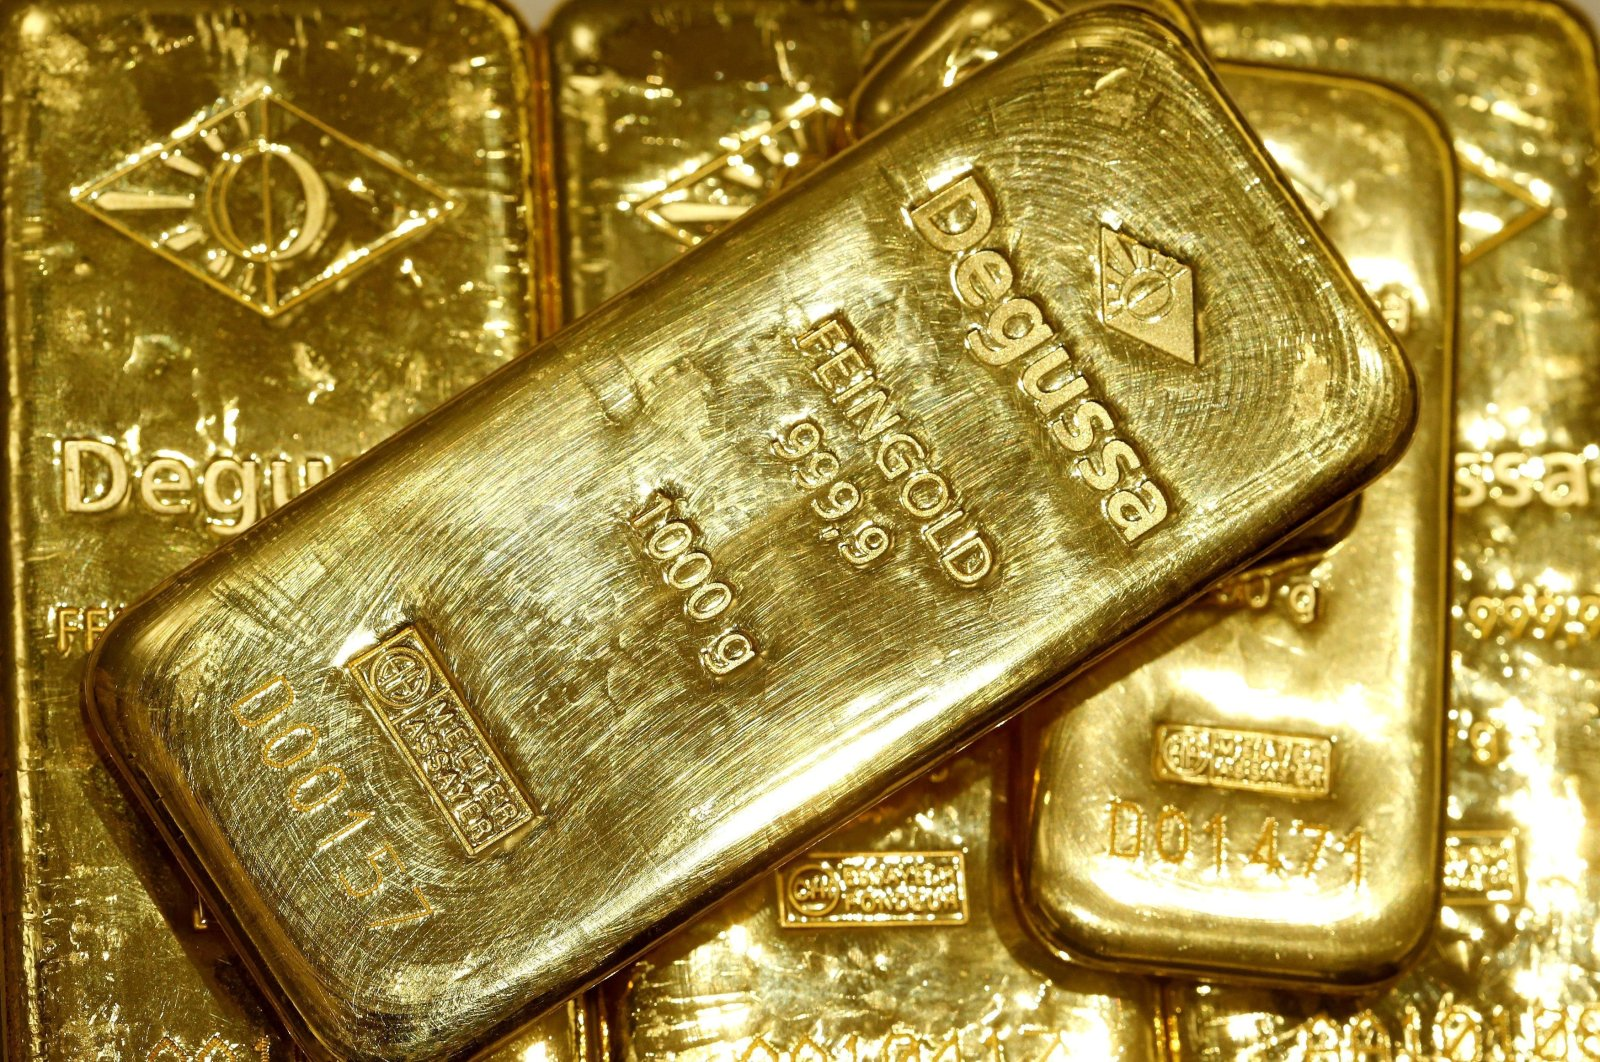 Gold bars are seen in the vault of the branch office of precious metal trader Degussa in Zurich, Switzerland, April 19, 2013.  (Reuters Photo)